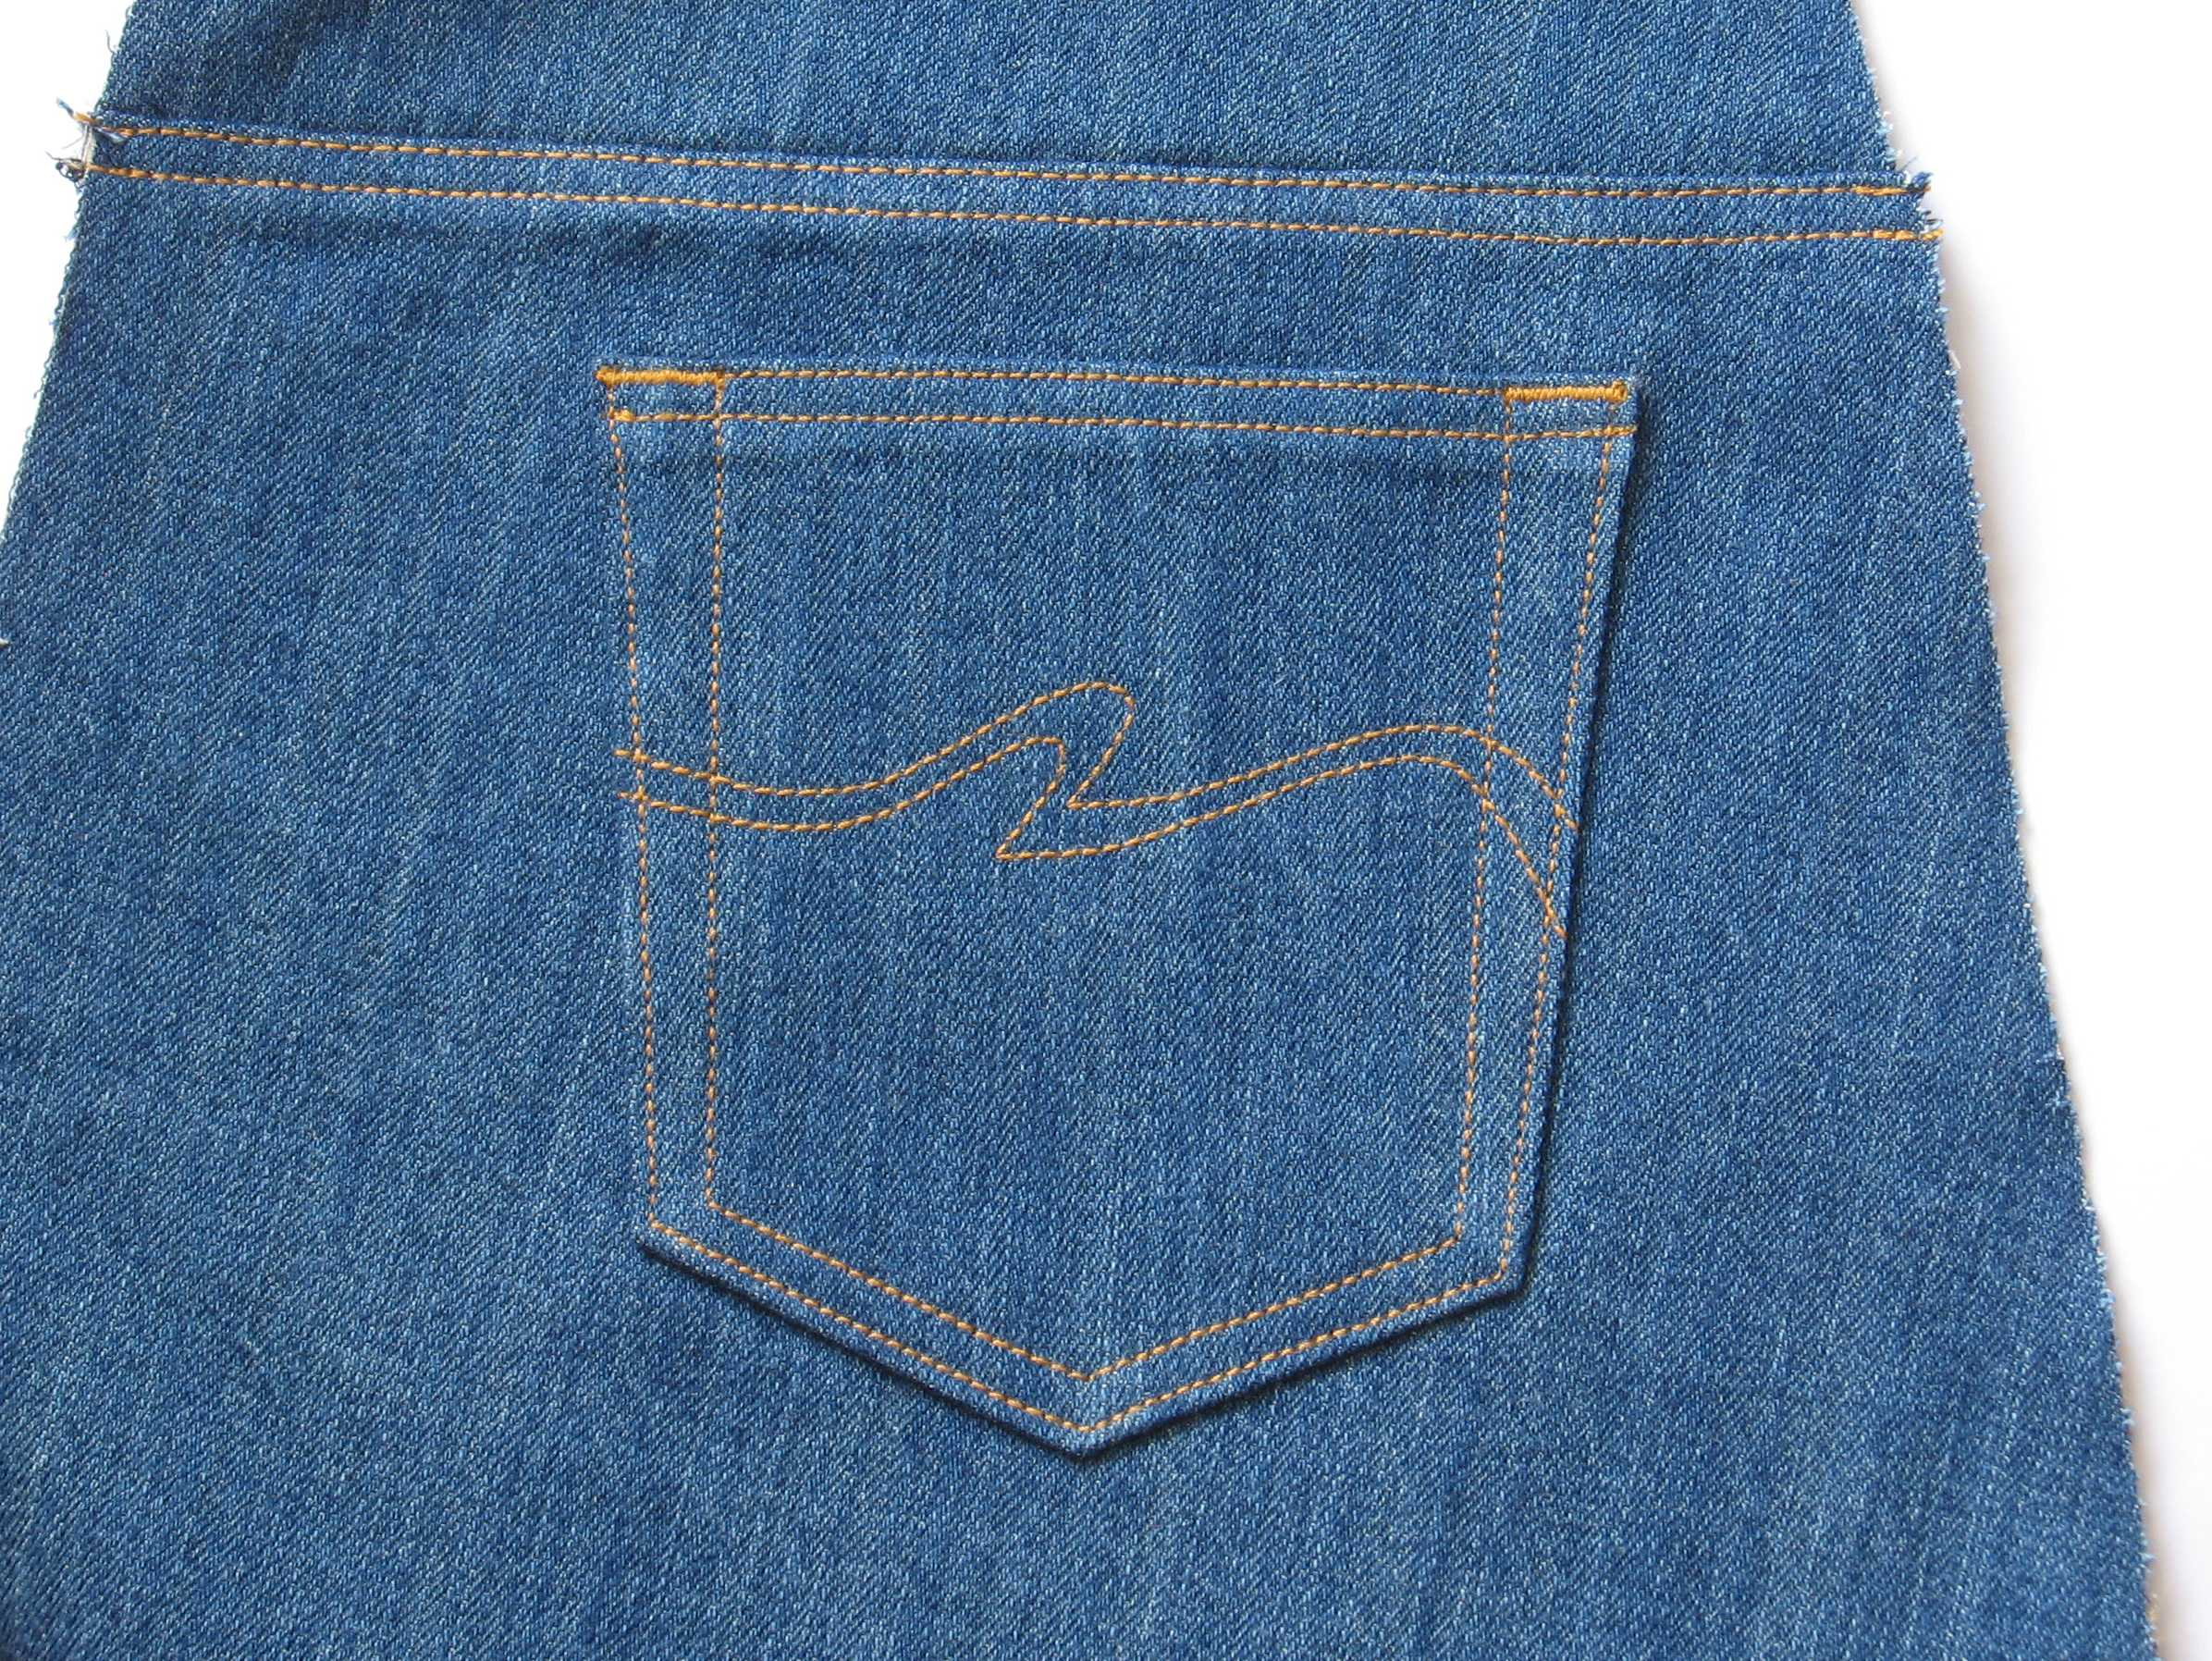 Jeans Pockets | Grow Your Own Clothes